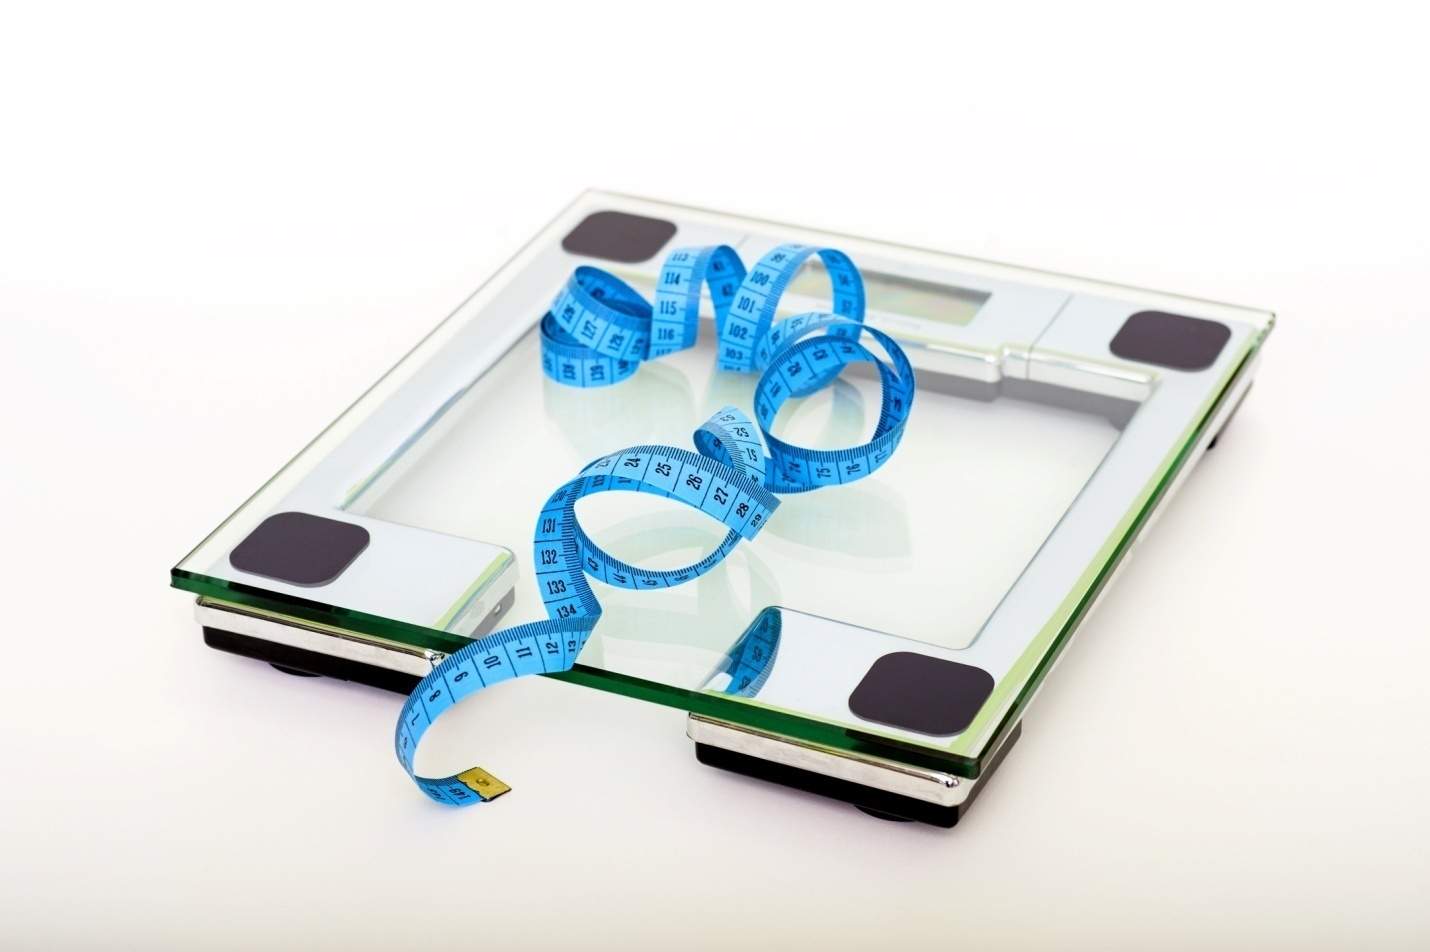 Facilitating Weight Loss With Acupuncture Does It